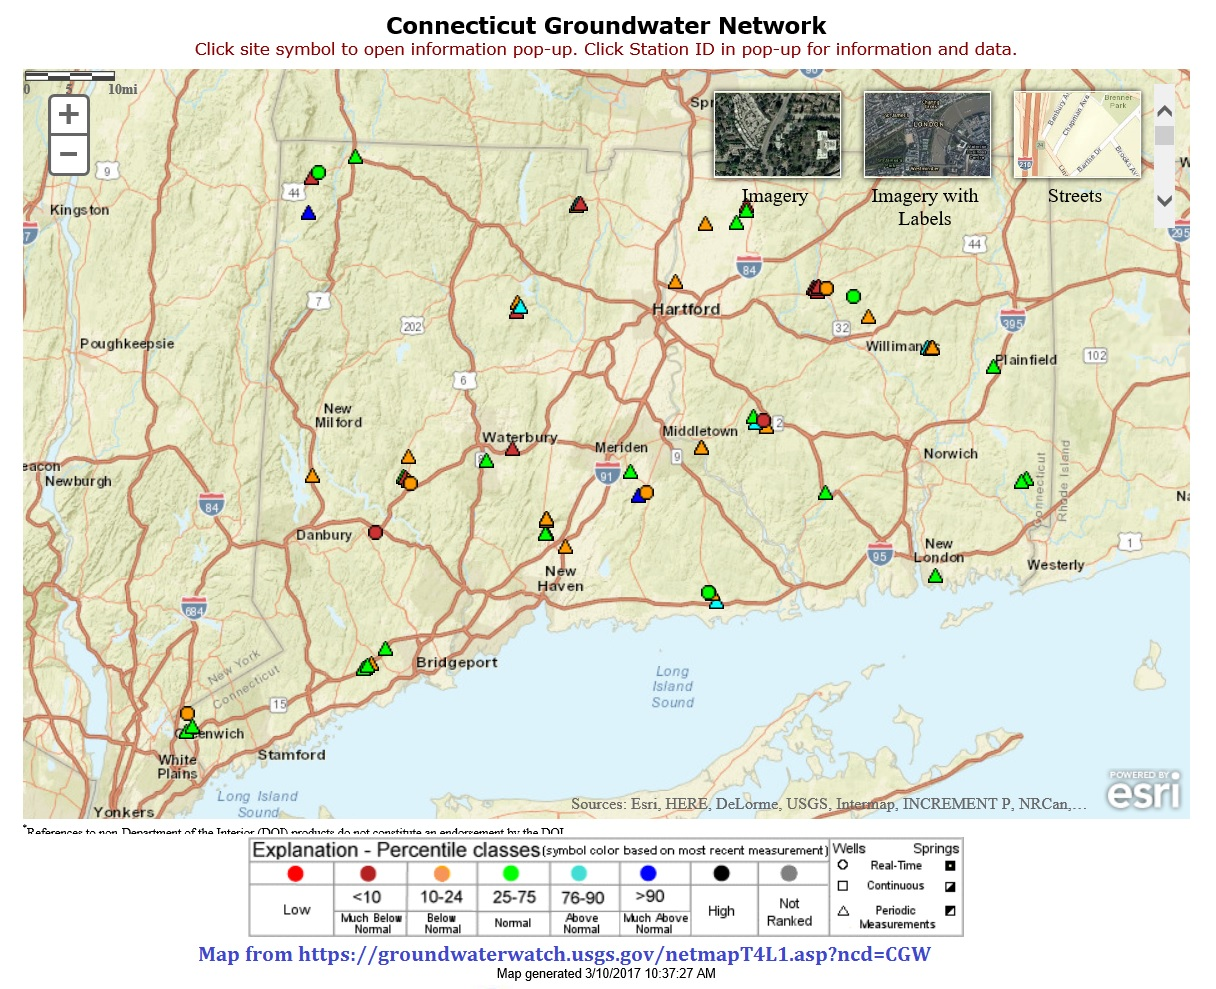 map of CT gw, link to website